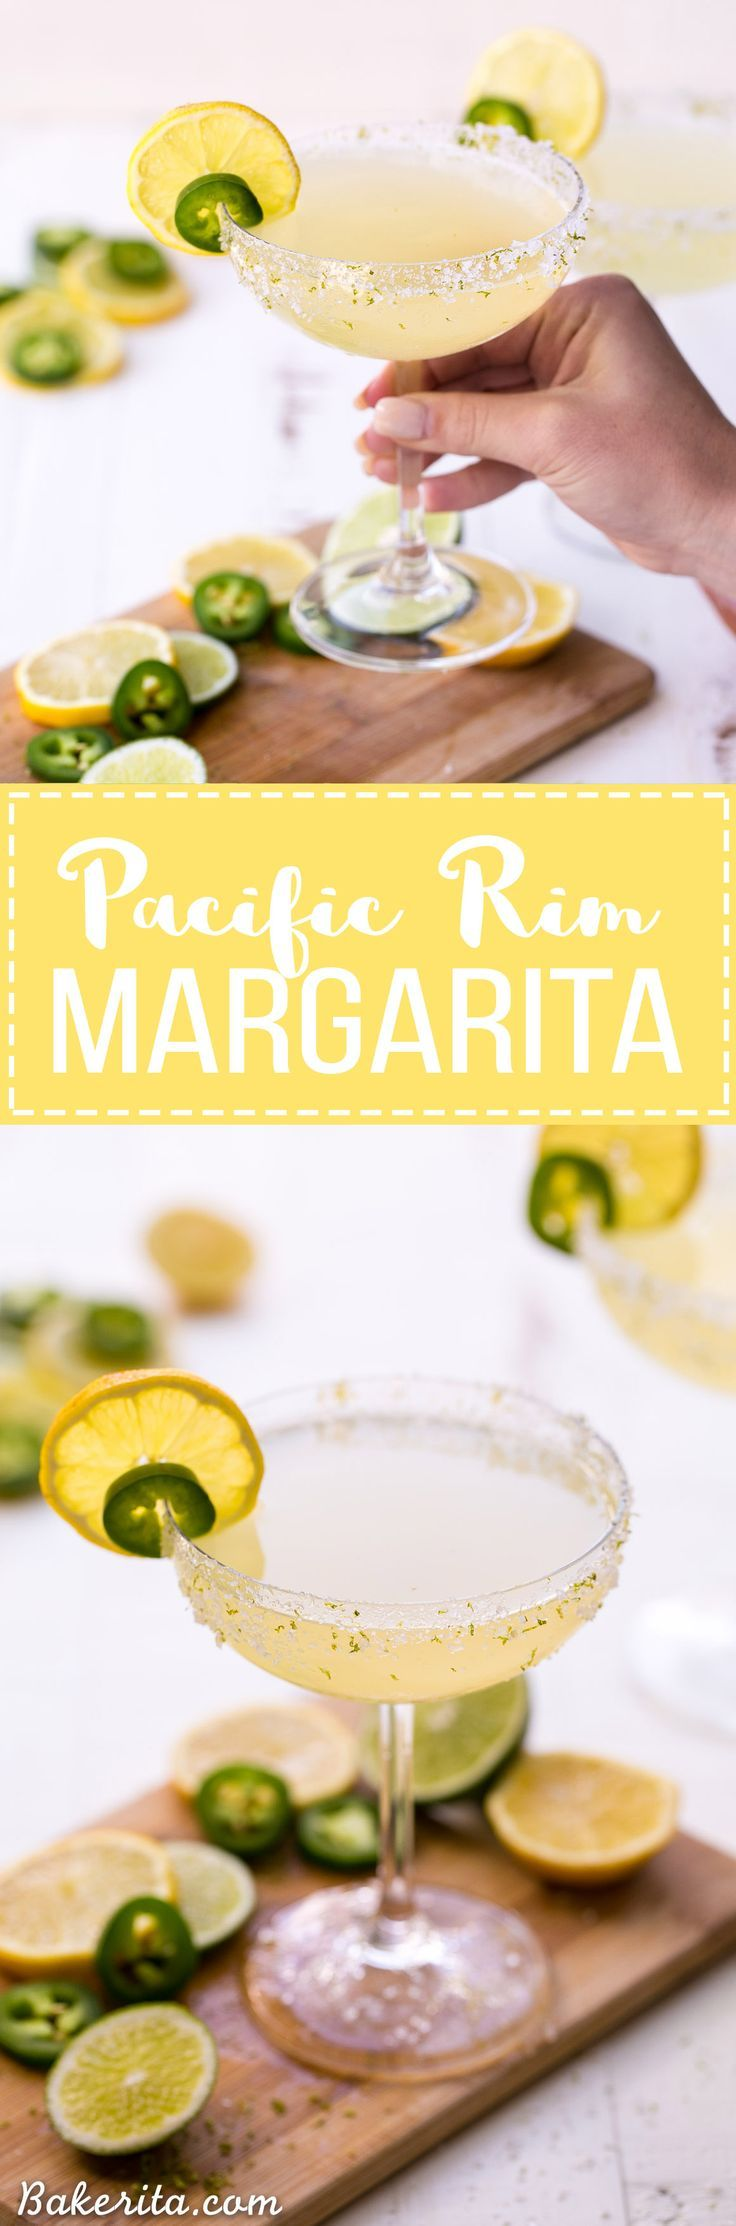 This Pacific Rim Margarita is a refreshing, tropical drink that you'll love sipping on! It's flavored with citrus and has a spicy coconut twist. Enjoy responsibly! #MargaritaOfTheYear #PacificRimMargarita #sponsored by @patrontequila